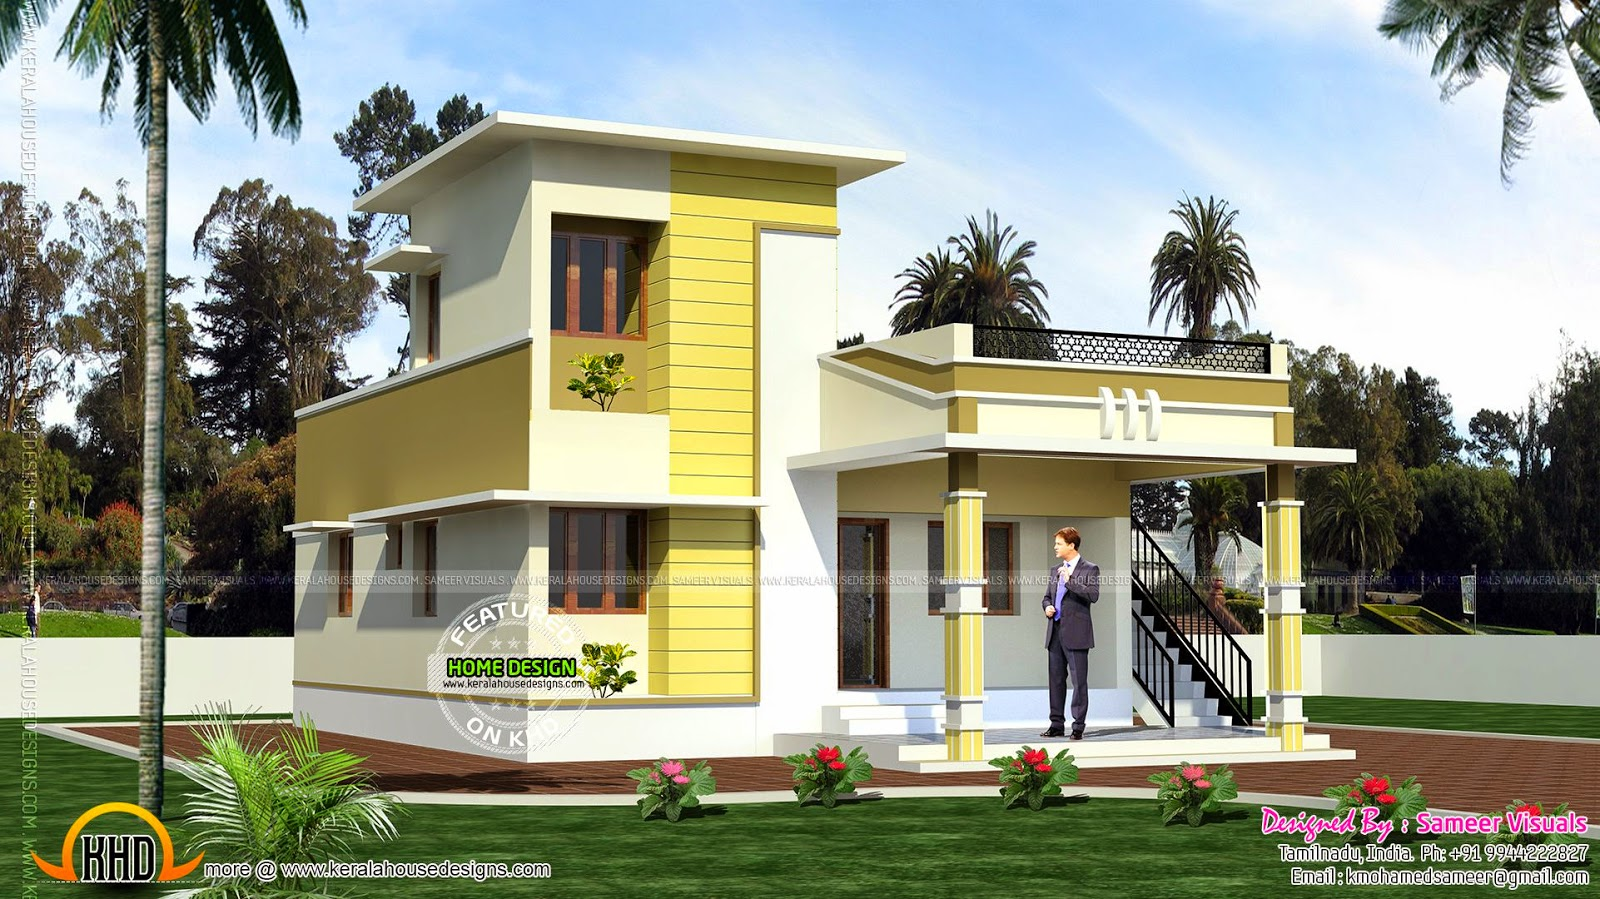 Single storied tamilnadu home kerala home design and for Single floor house designs tamilnadu